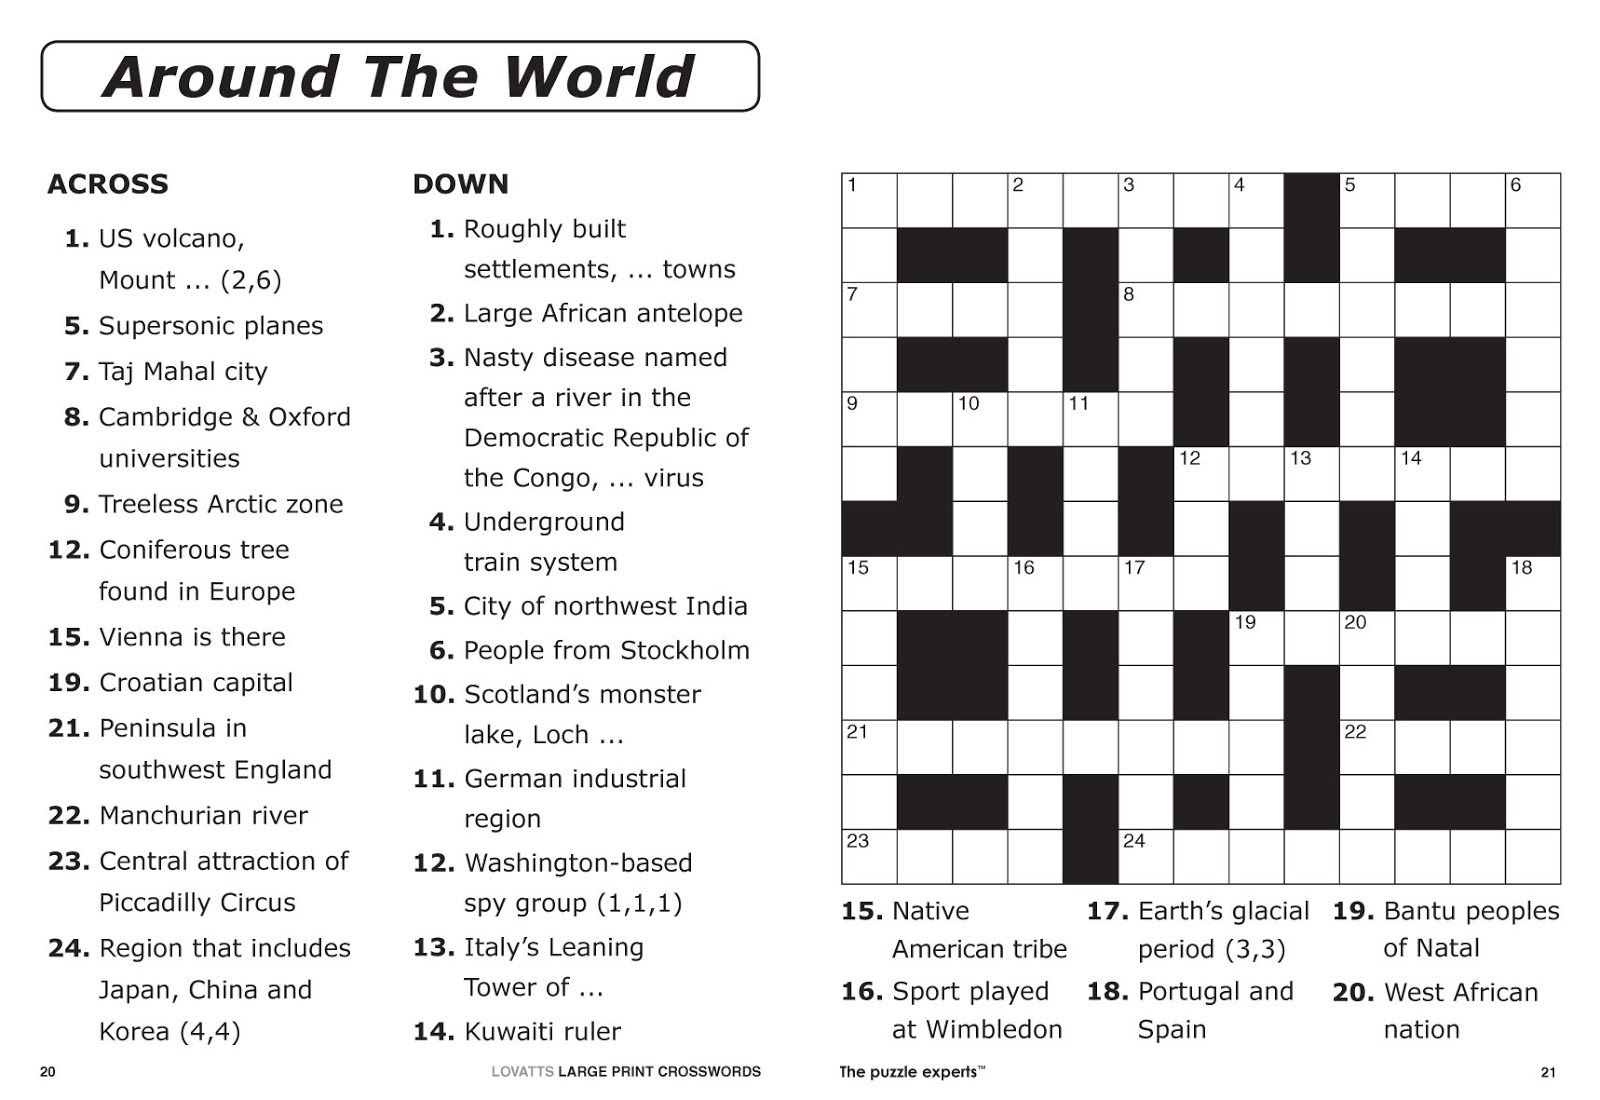 Free Printable Large Print Crossword Puzzles | M3U8 - Printable Crossword For 10 Year Olds